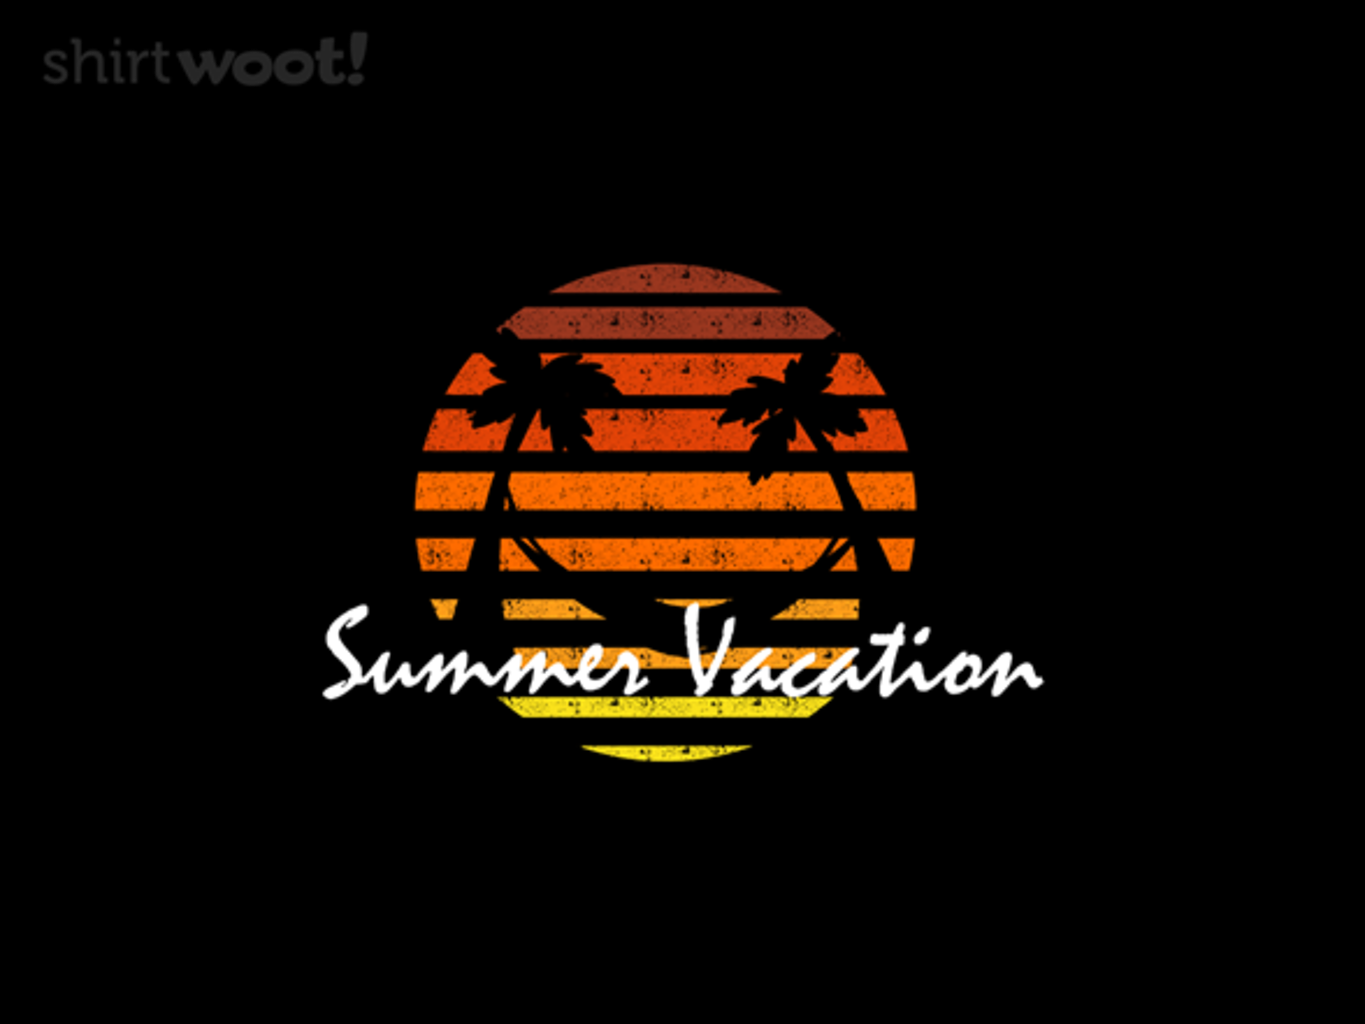 Woot!: Vintage Summer Vacation - $15.00 + Free shipping